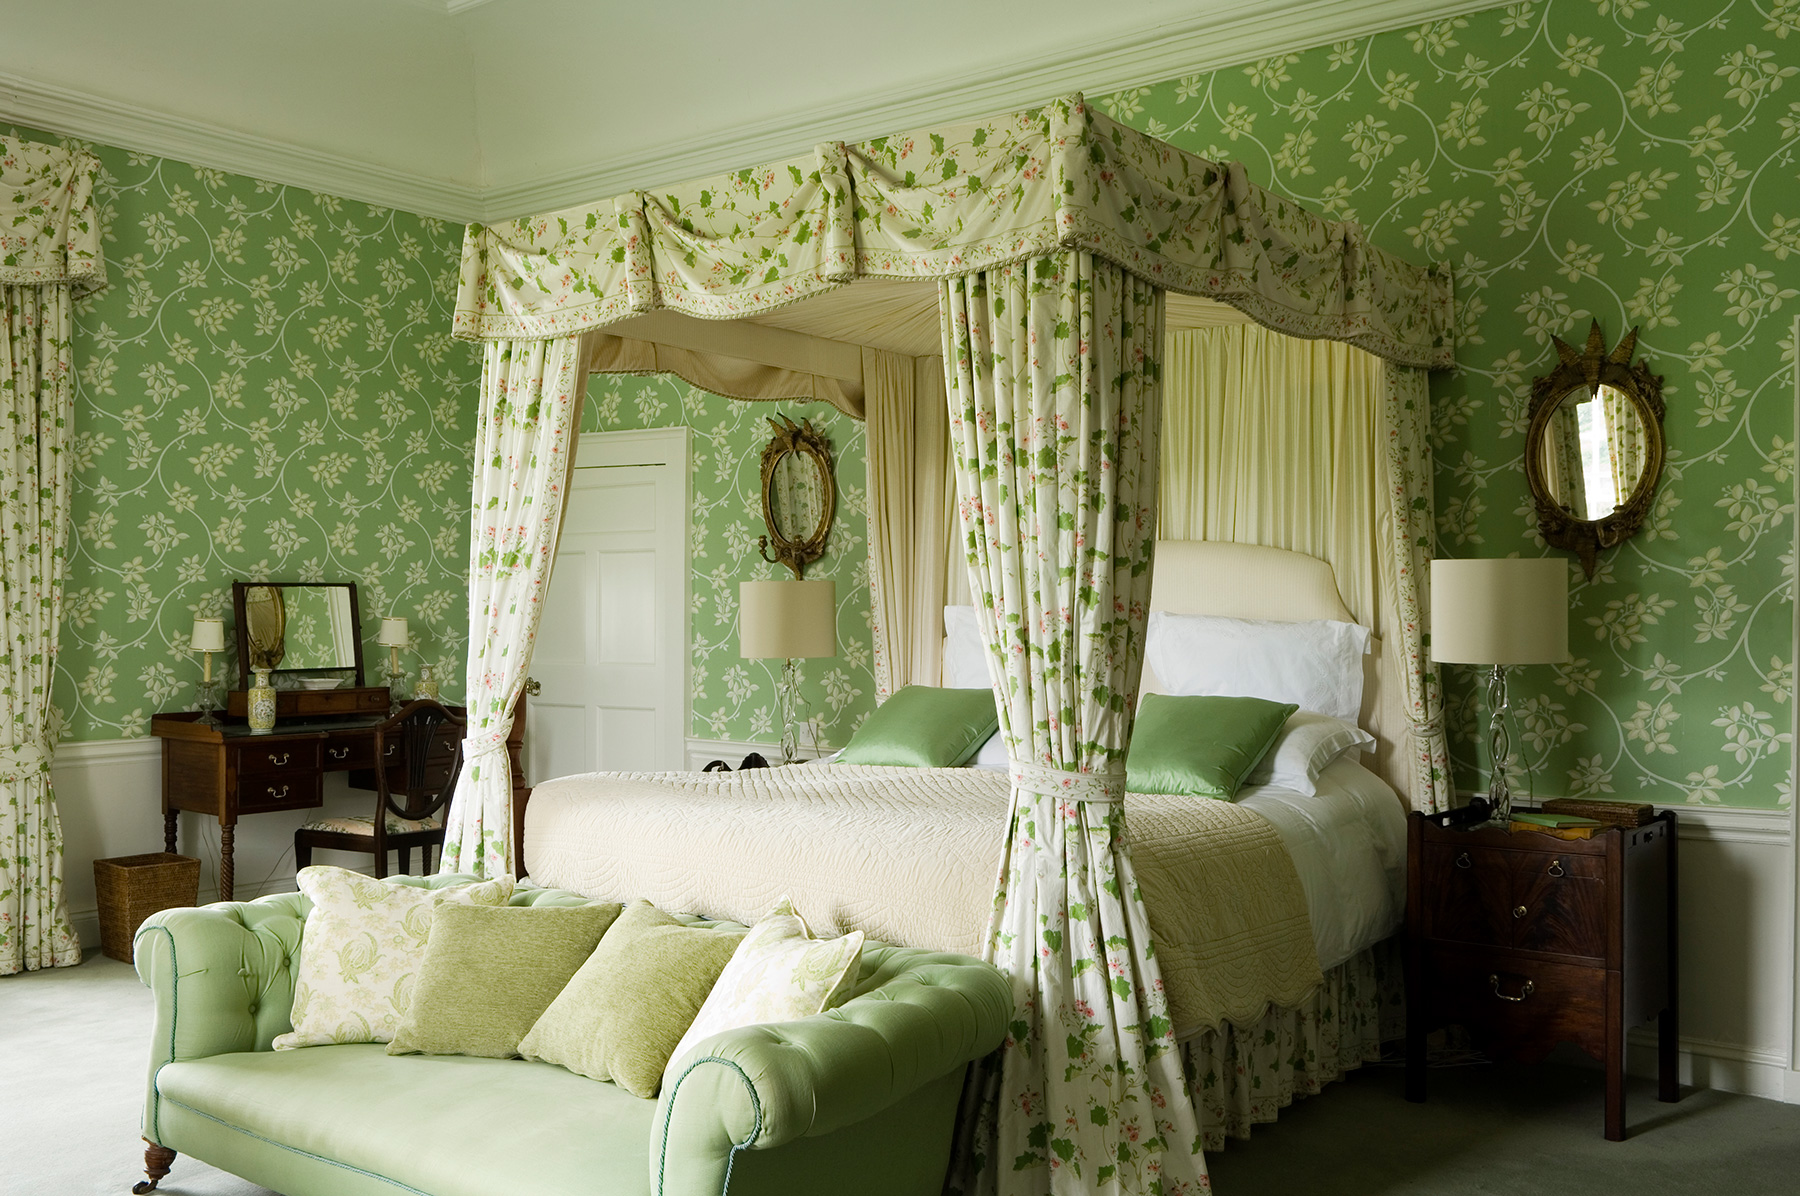 Irish Country Green Bedroom Interiors By Color